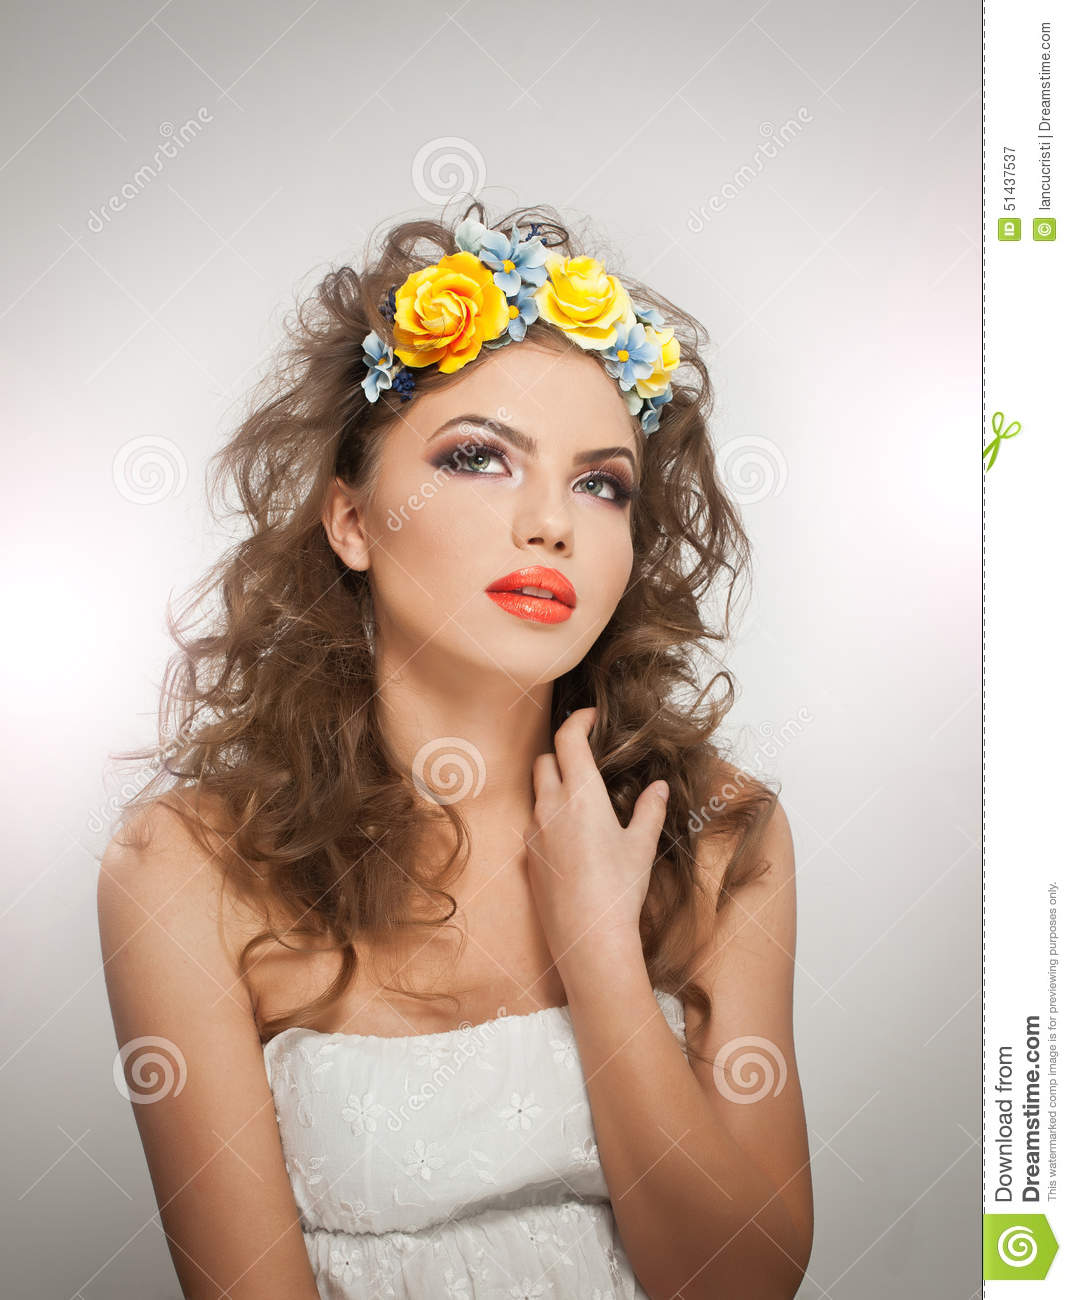 portrait of beautiful girl in studio with yellow roses in her hair